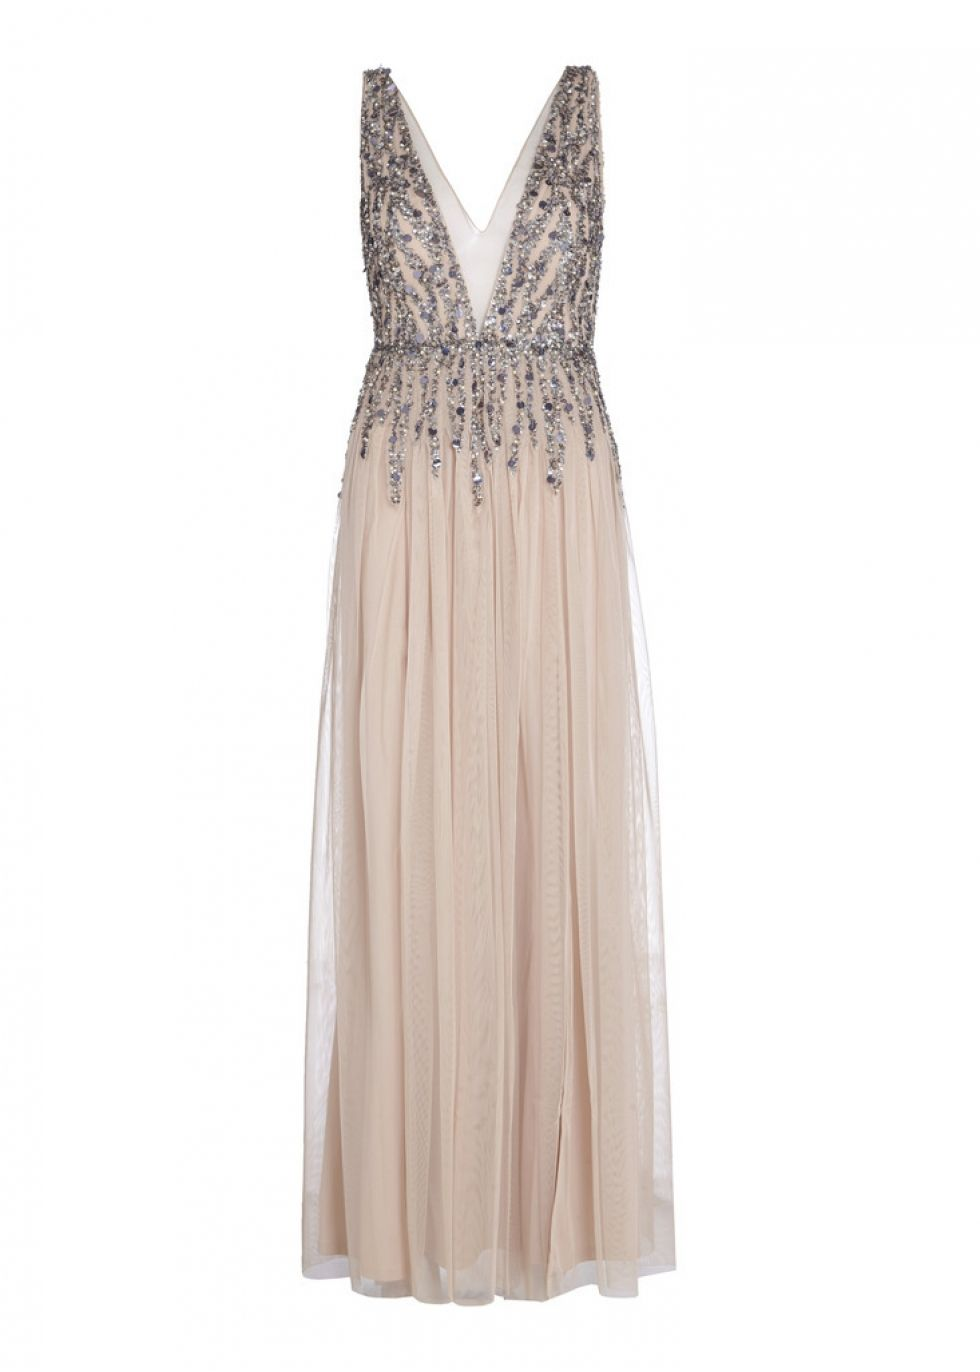 9c3f6776 Nude sleeveless evening dress by Aidan Aidan Mattox offered in pleated  tulle, hand applied with a medley of beads, sequins and faux pearls in  antique silver ...